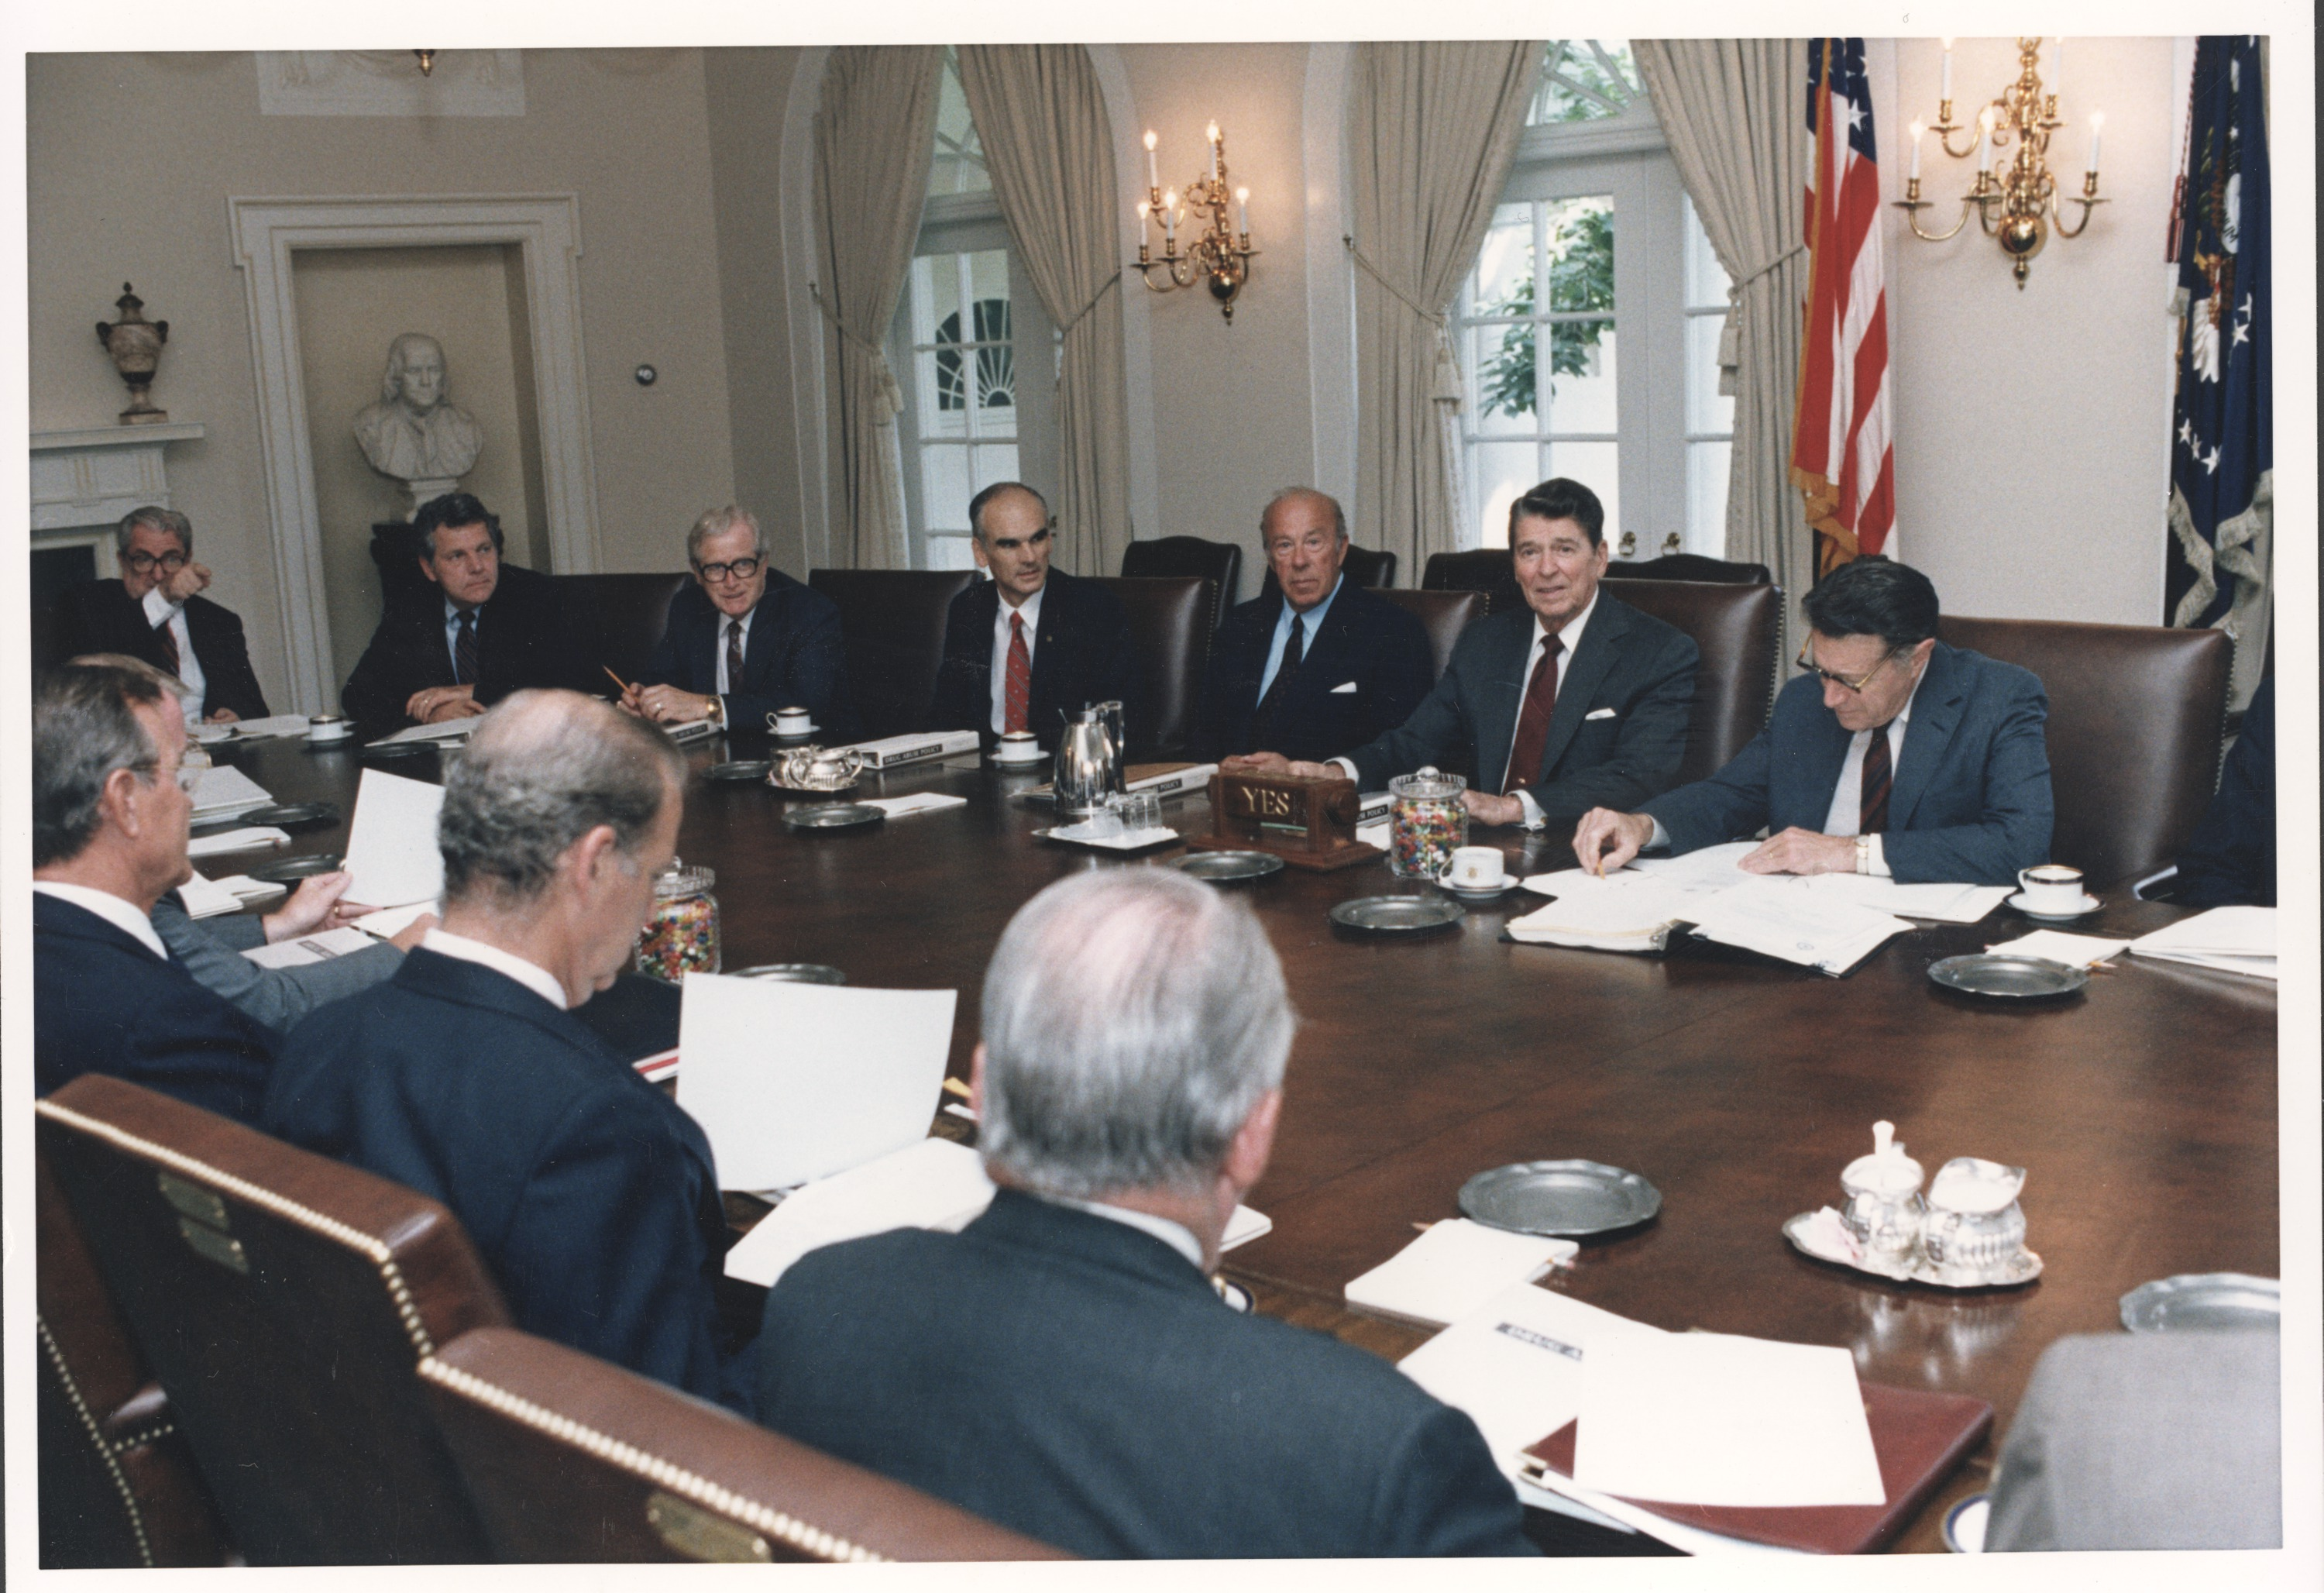 presidential cabinet definition file photograph of president leading a cabinet 24912